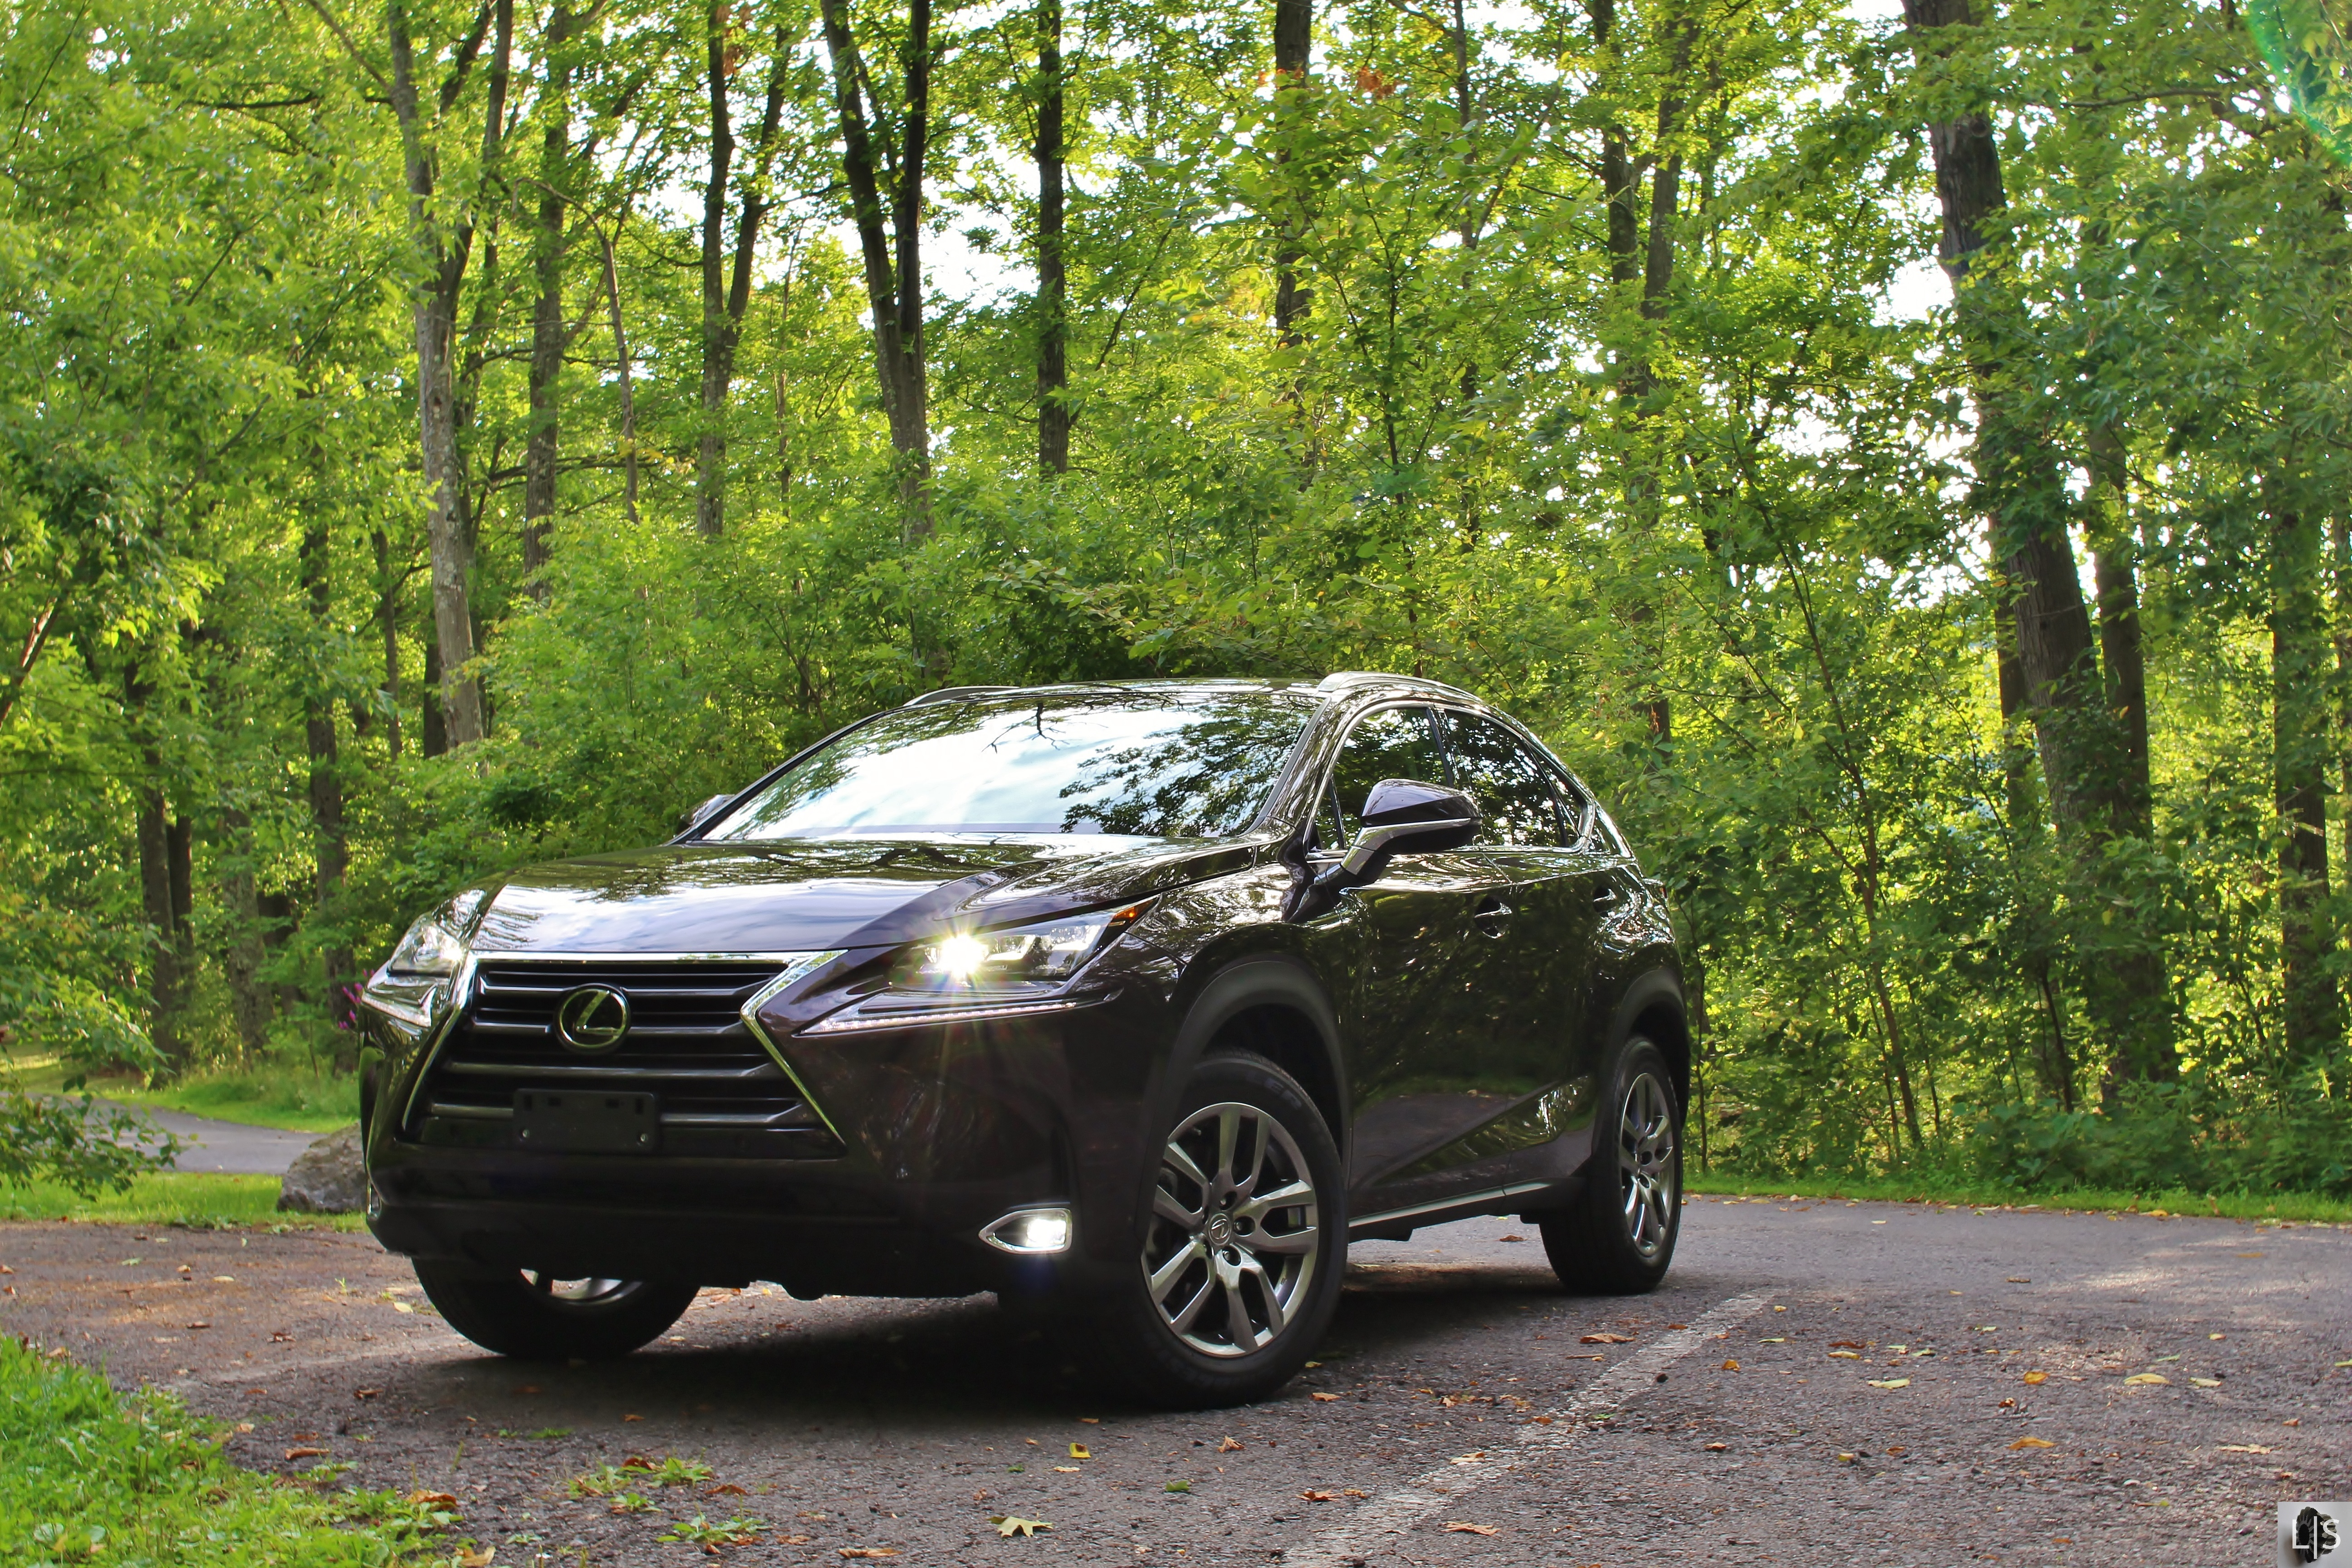 nx lf caradvice previewed lexus suv radical price by loading concept photos interior images